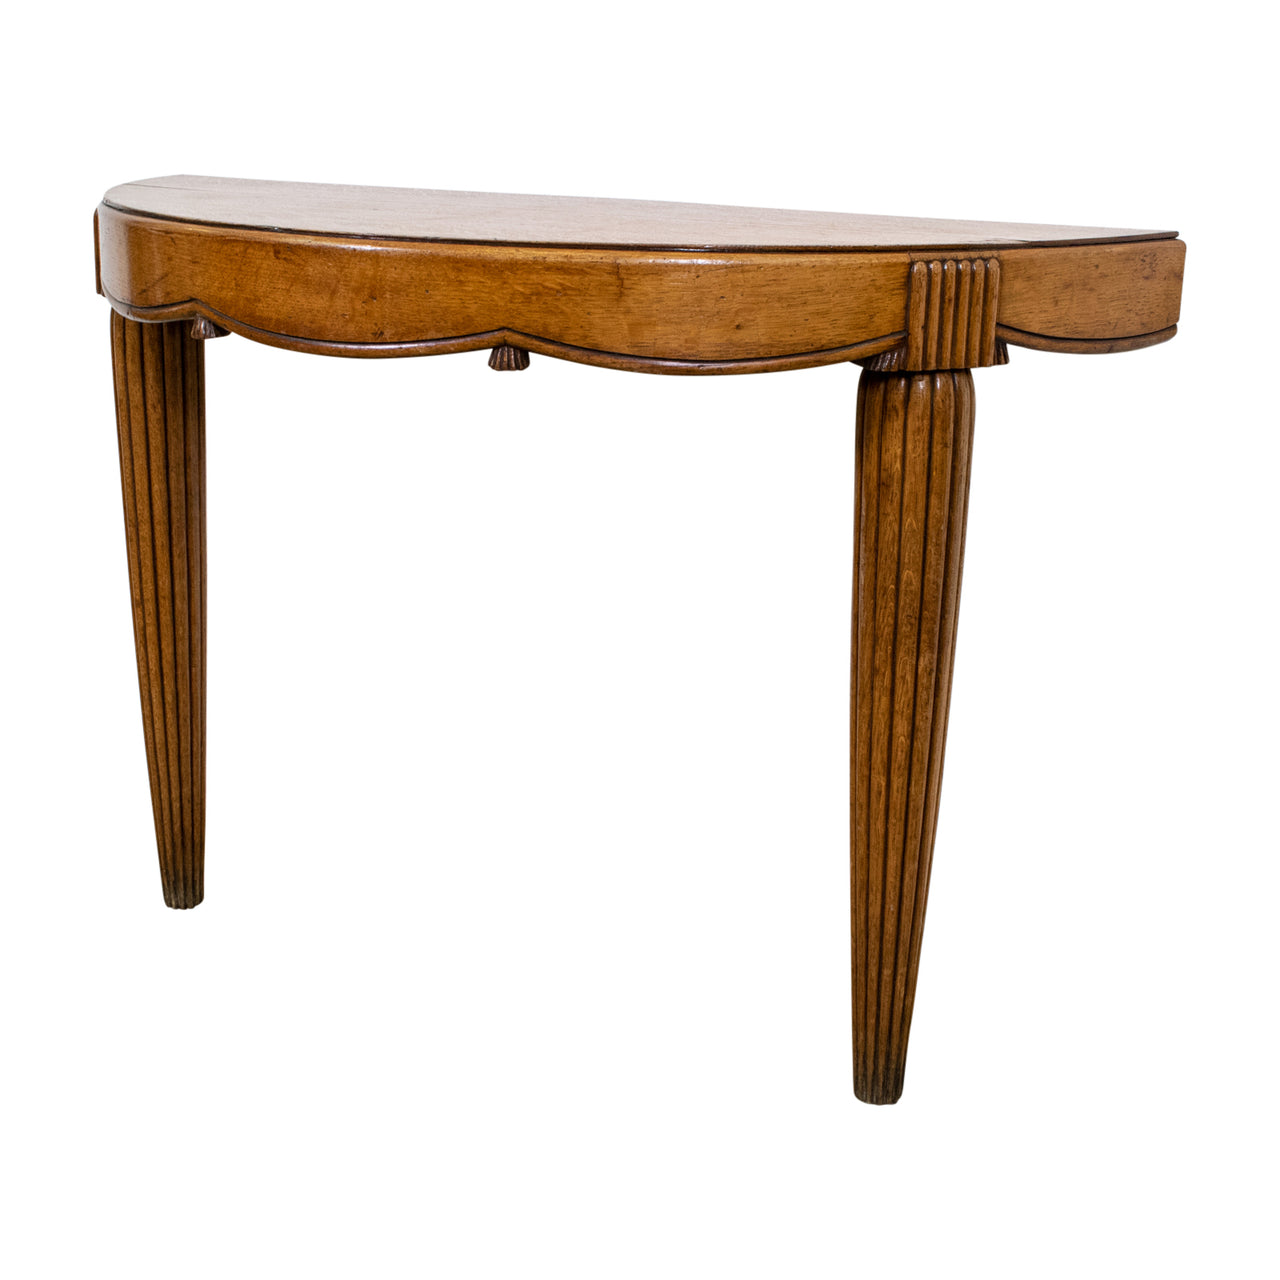 French Art Deco Demi-Lune Console Table